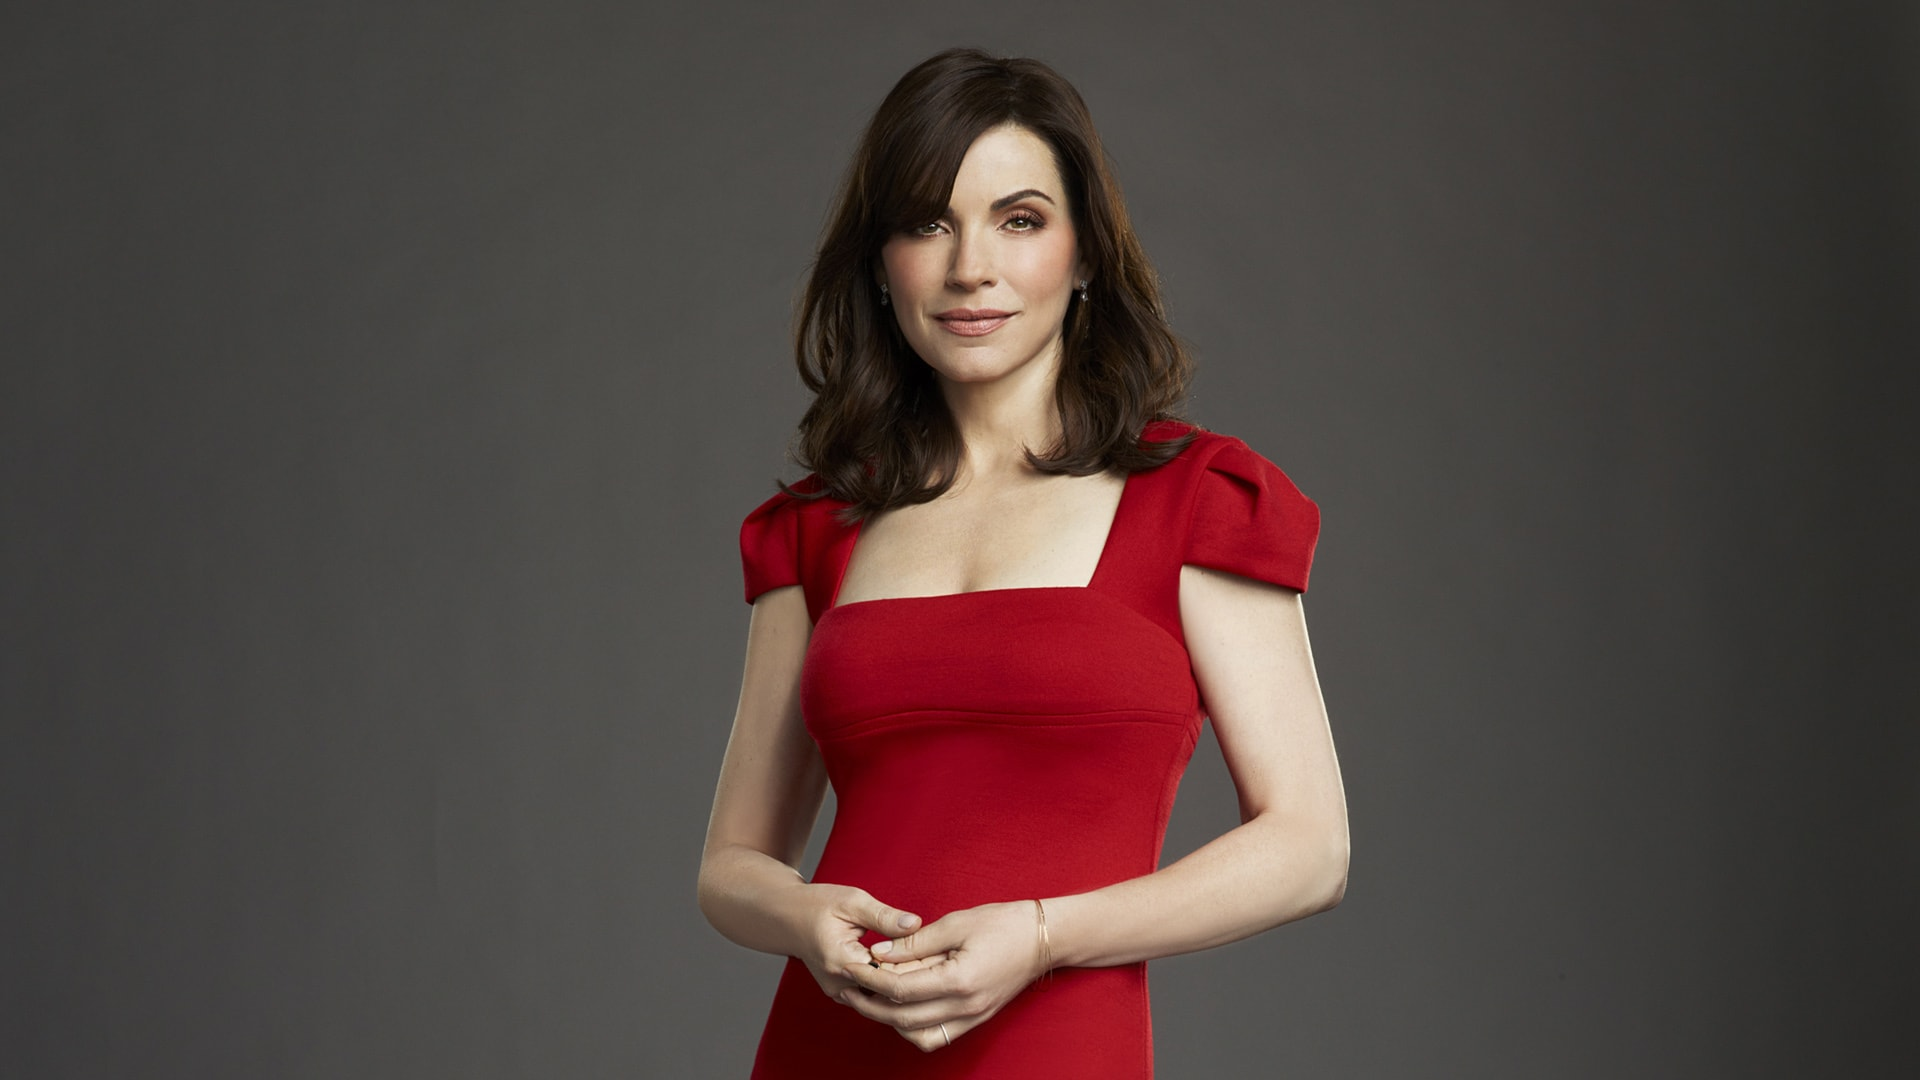 Julianna Margulies Desktop wallpapers